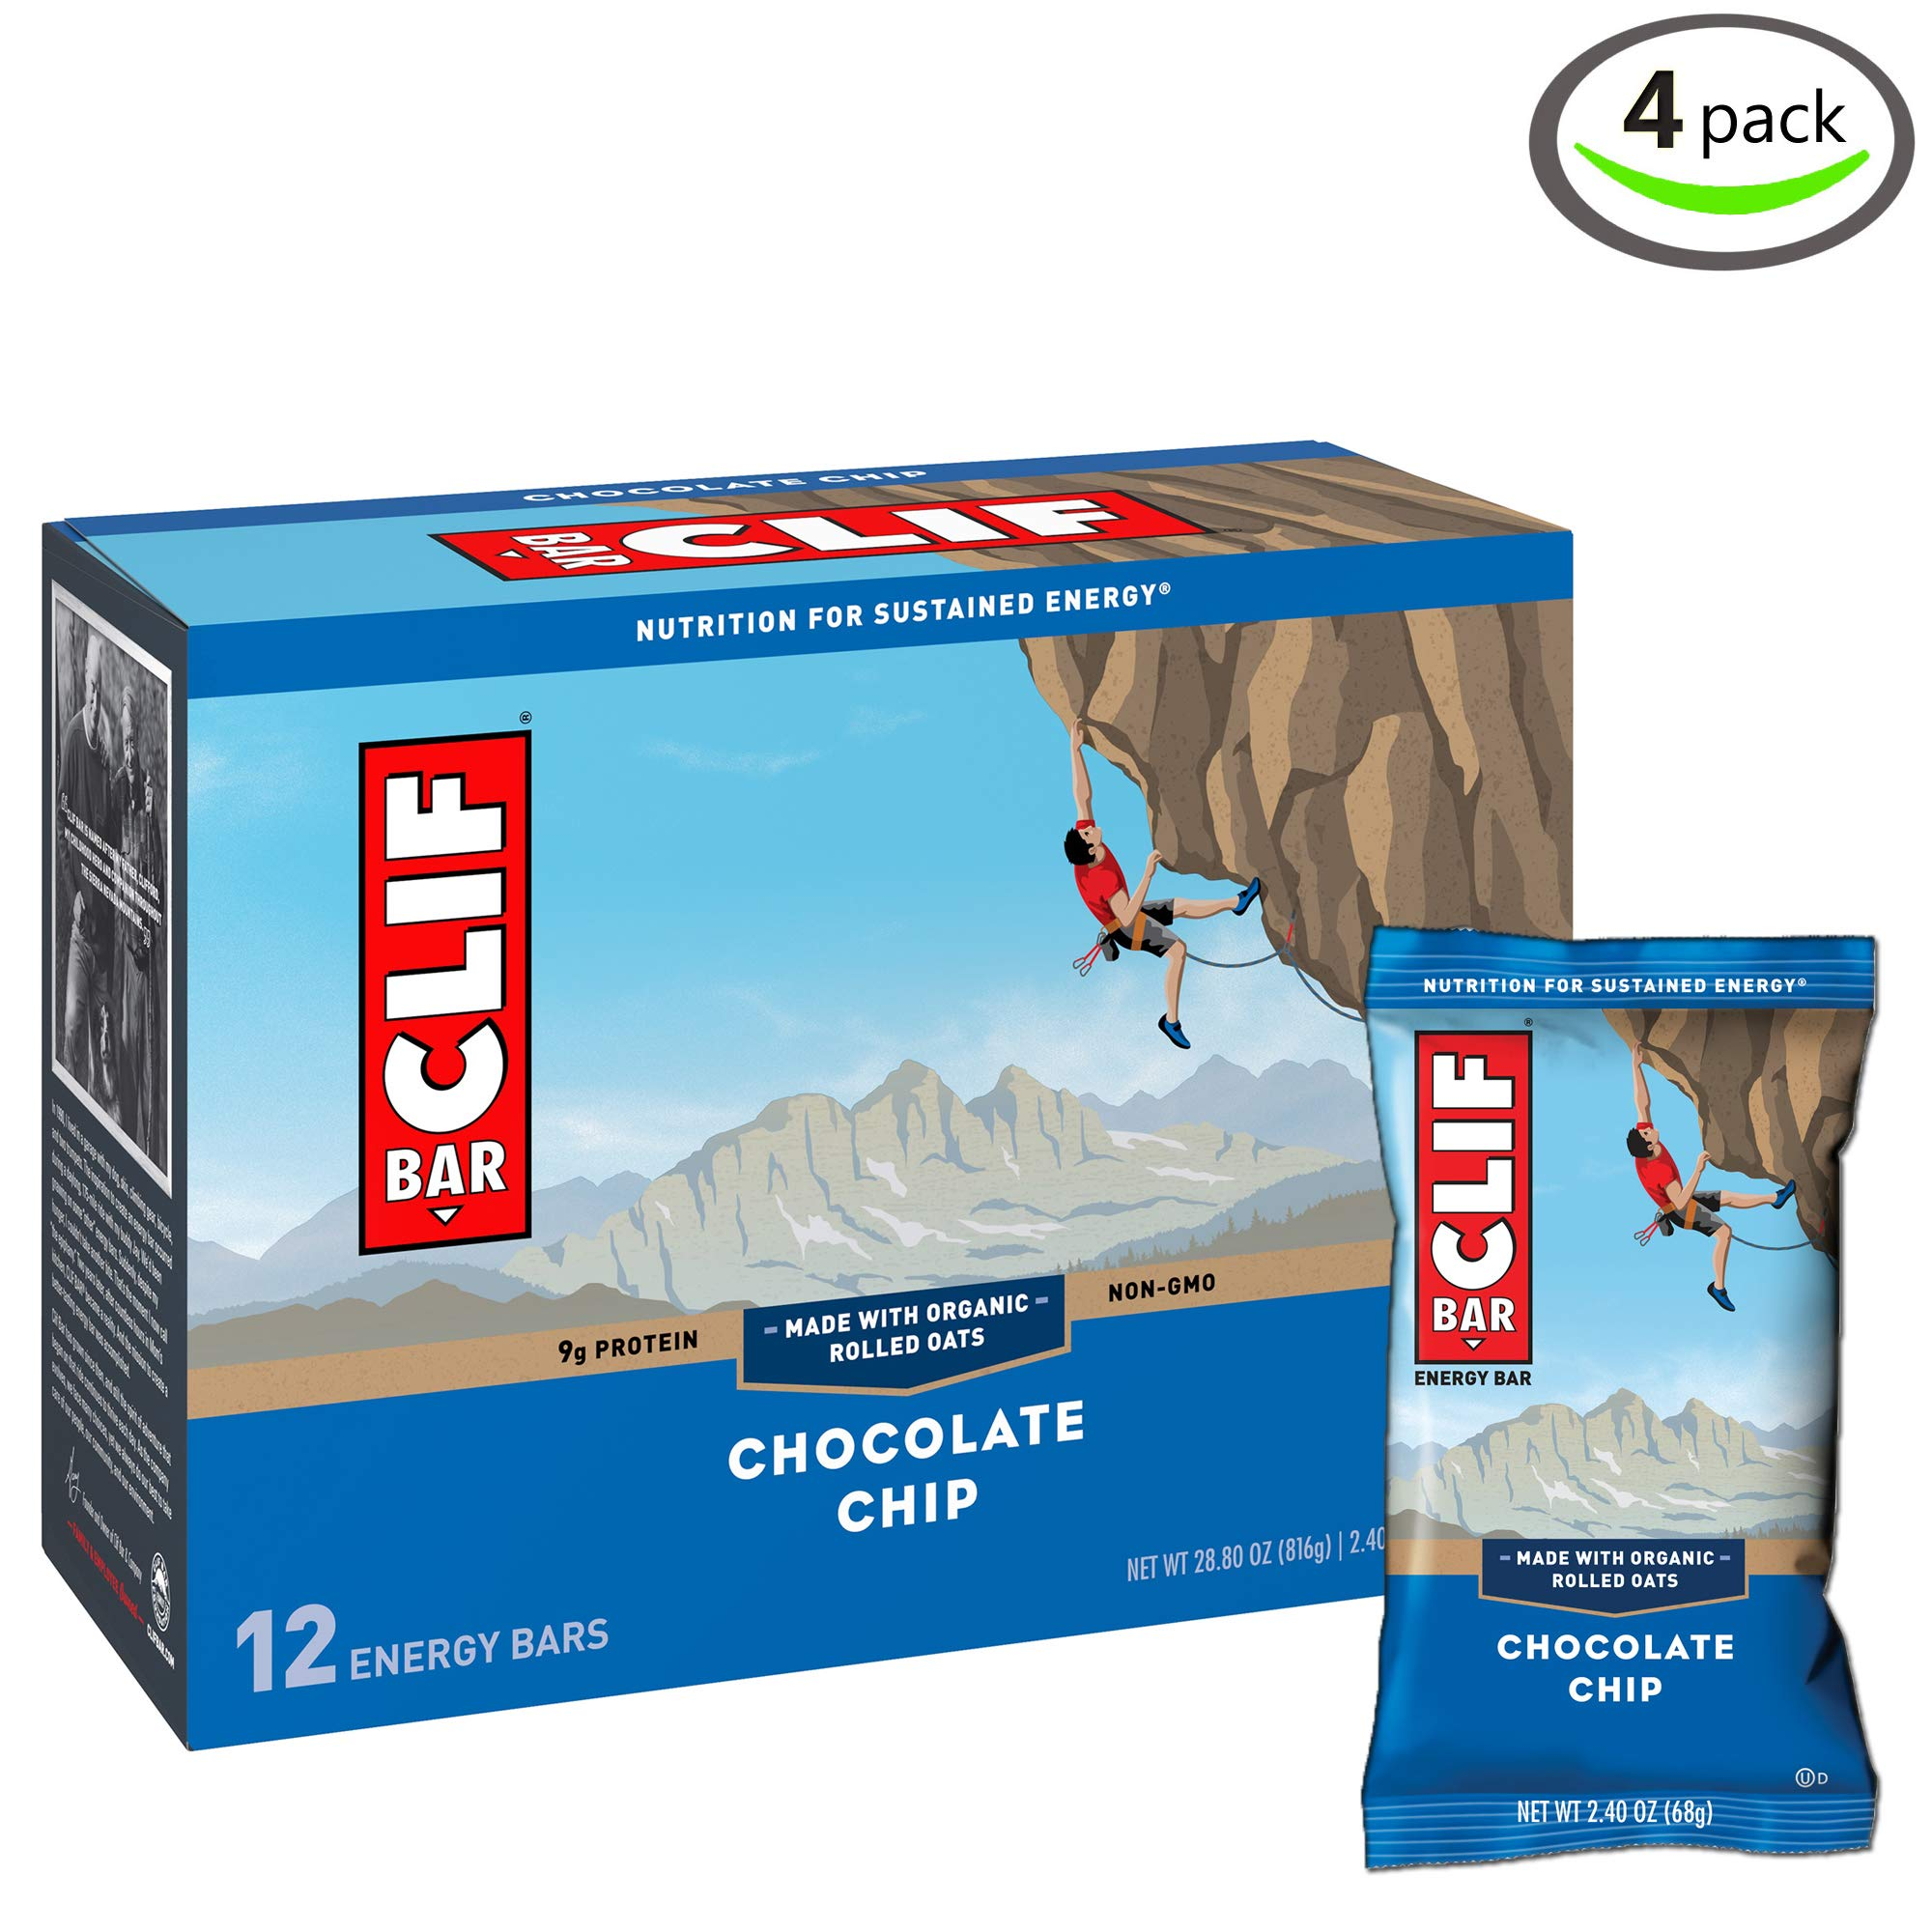 Clif Bar Energy Bar, Chocolate Chip, 2.4 Ounce, 12 Count - Pack of 4 by Clif Bar